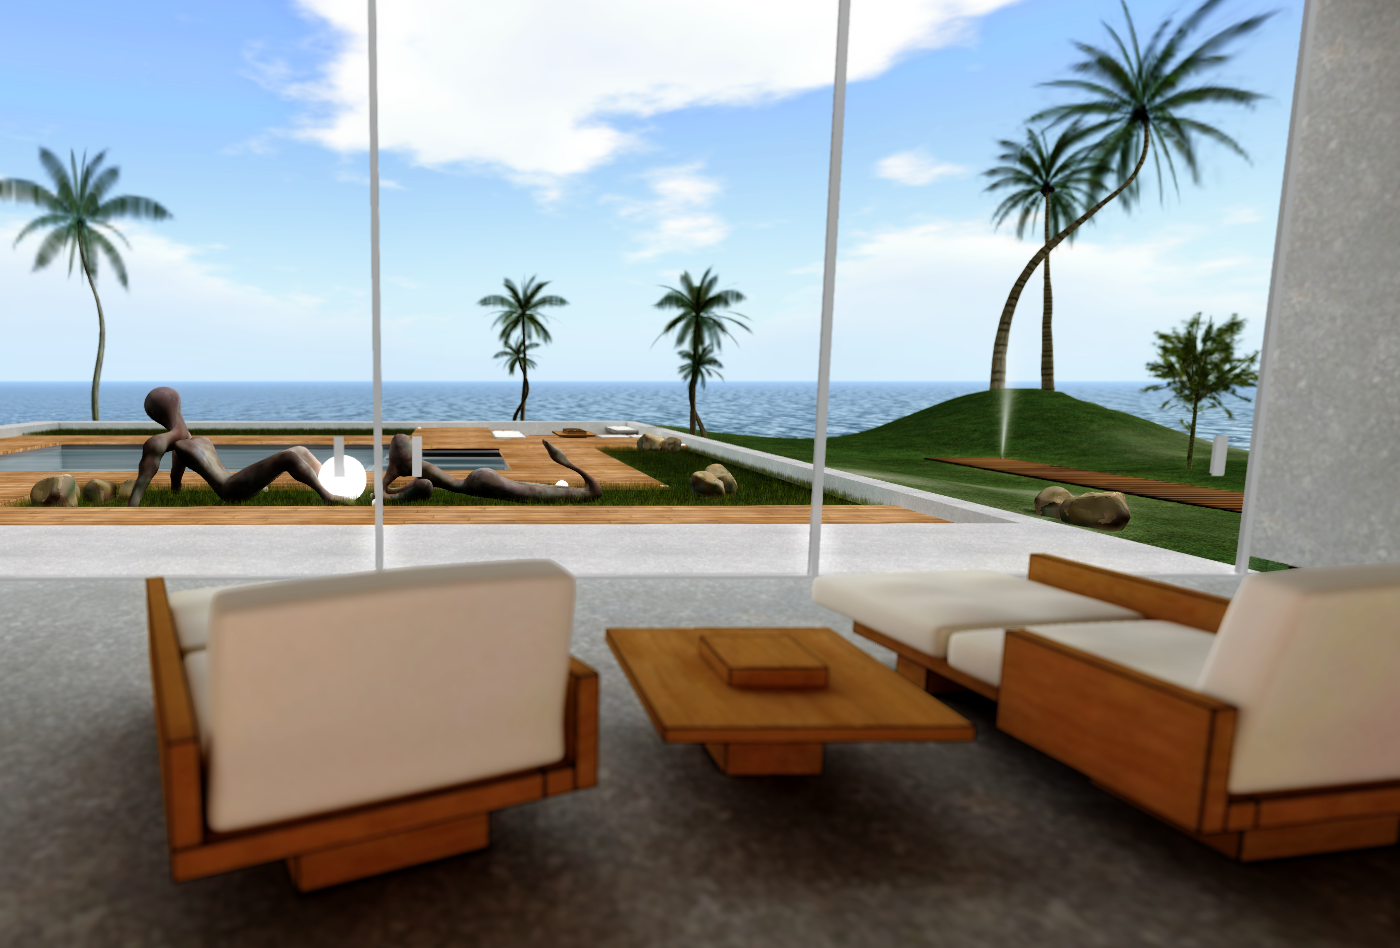 A view to the deck and the pool from the Nevada House living room